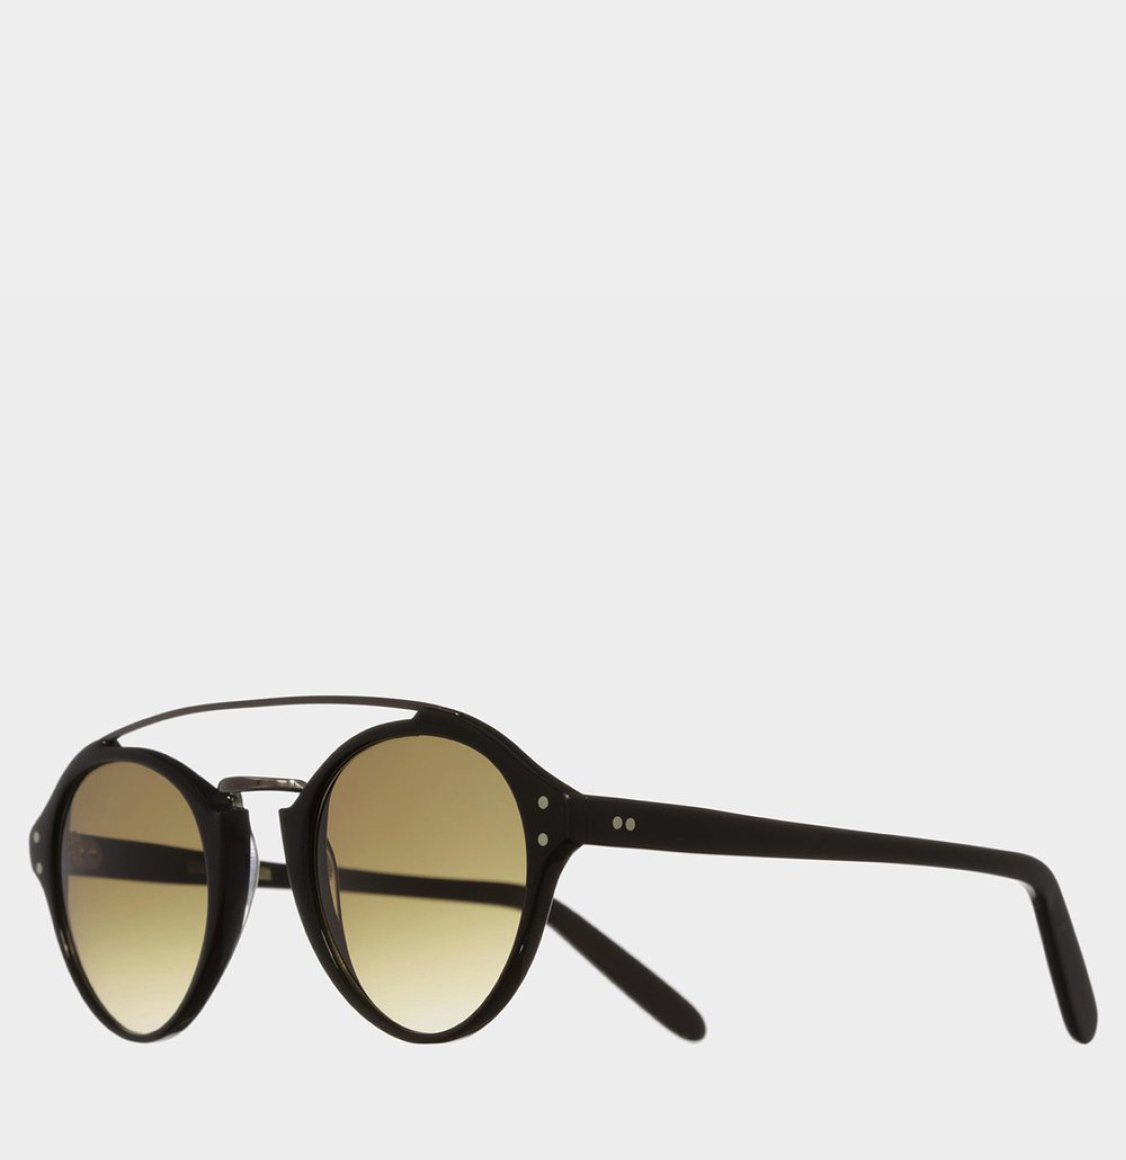 Cutler and Gross Oval-Frame Acetate Black Γυαλιά Ηλίου